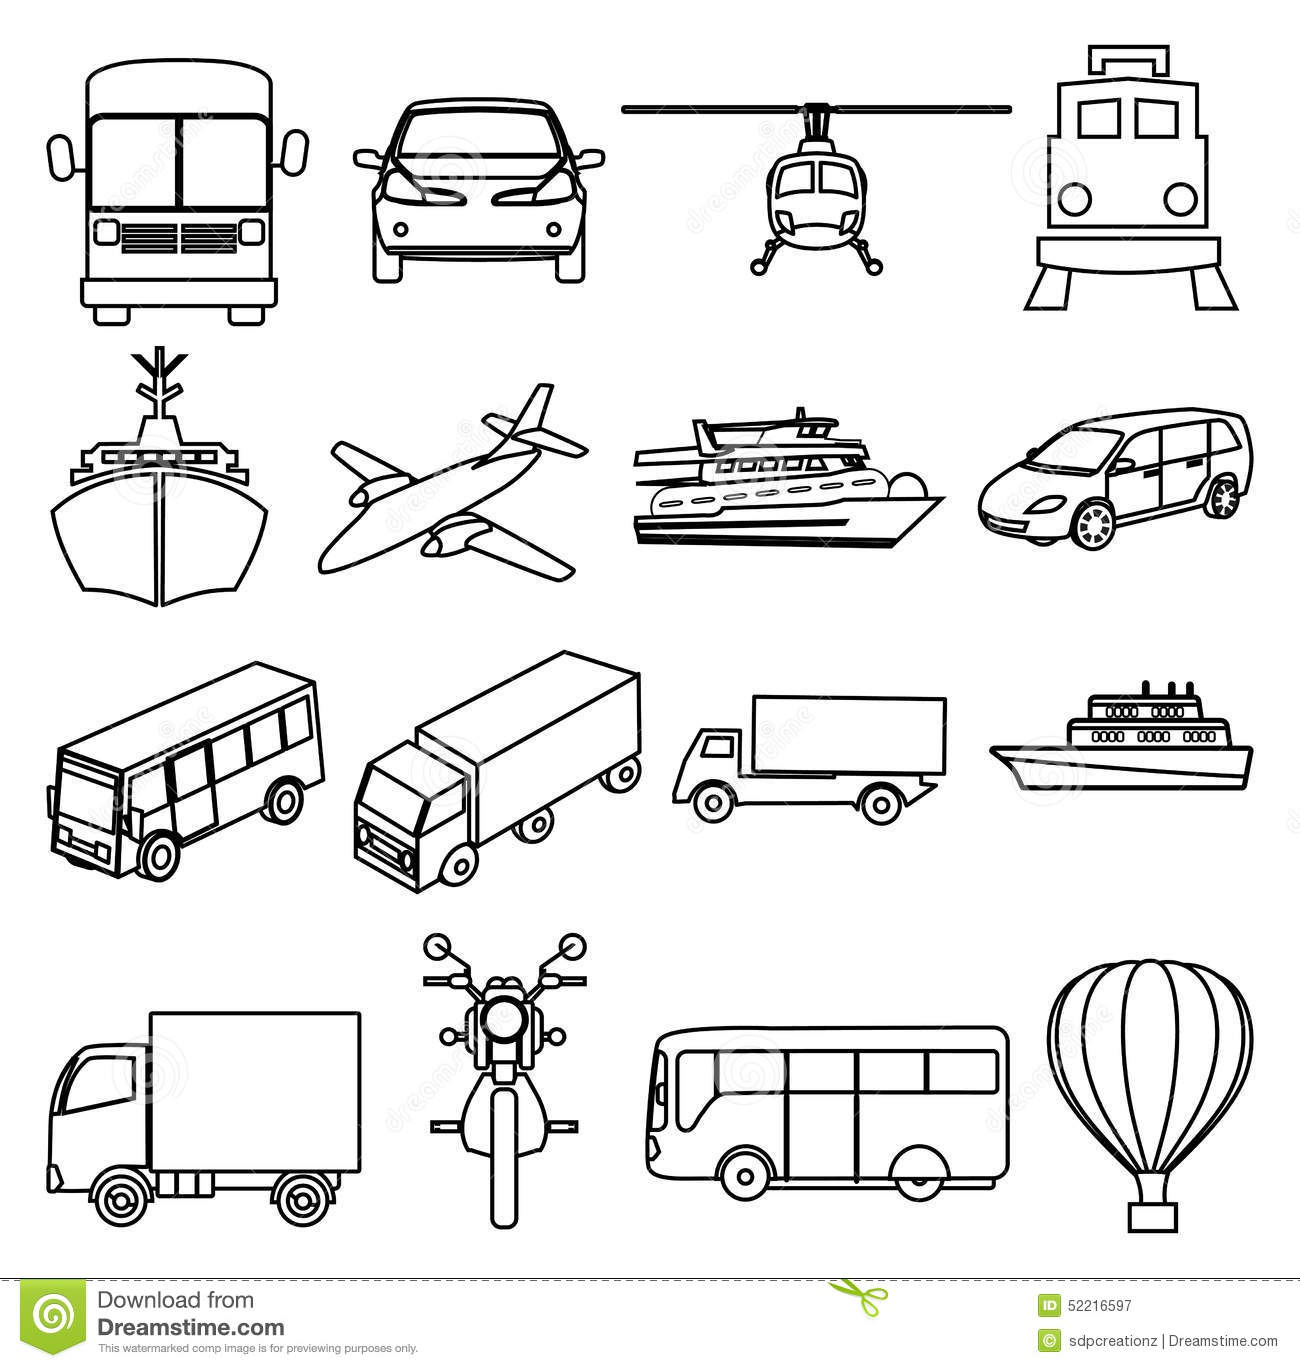 corel draw clipart collection free download